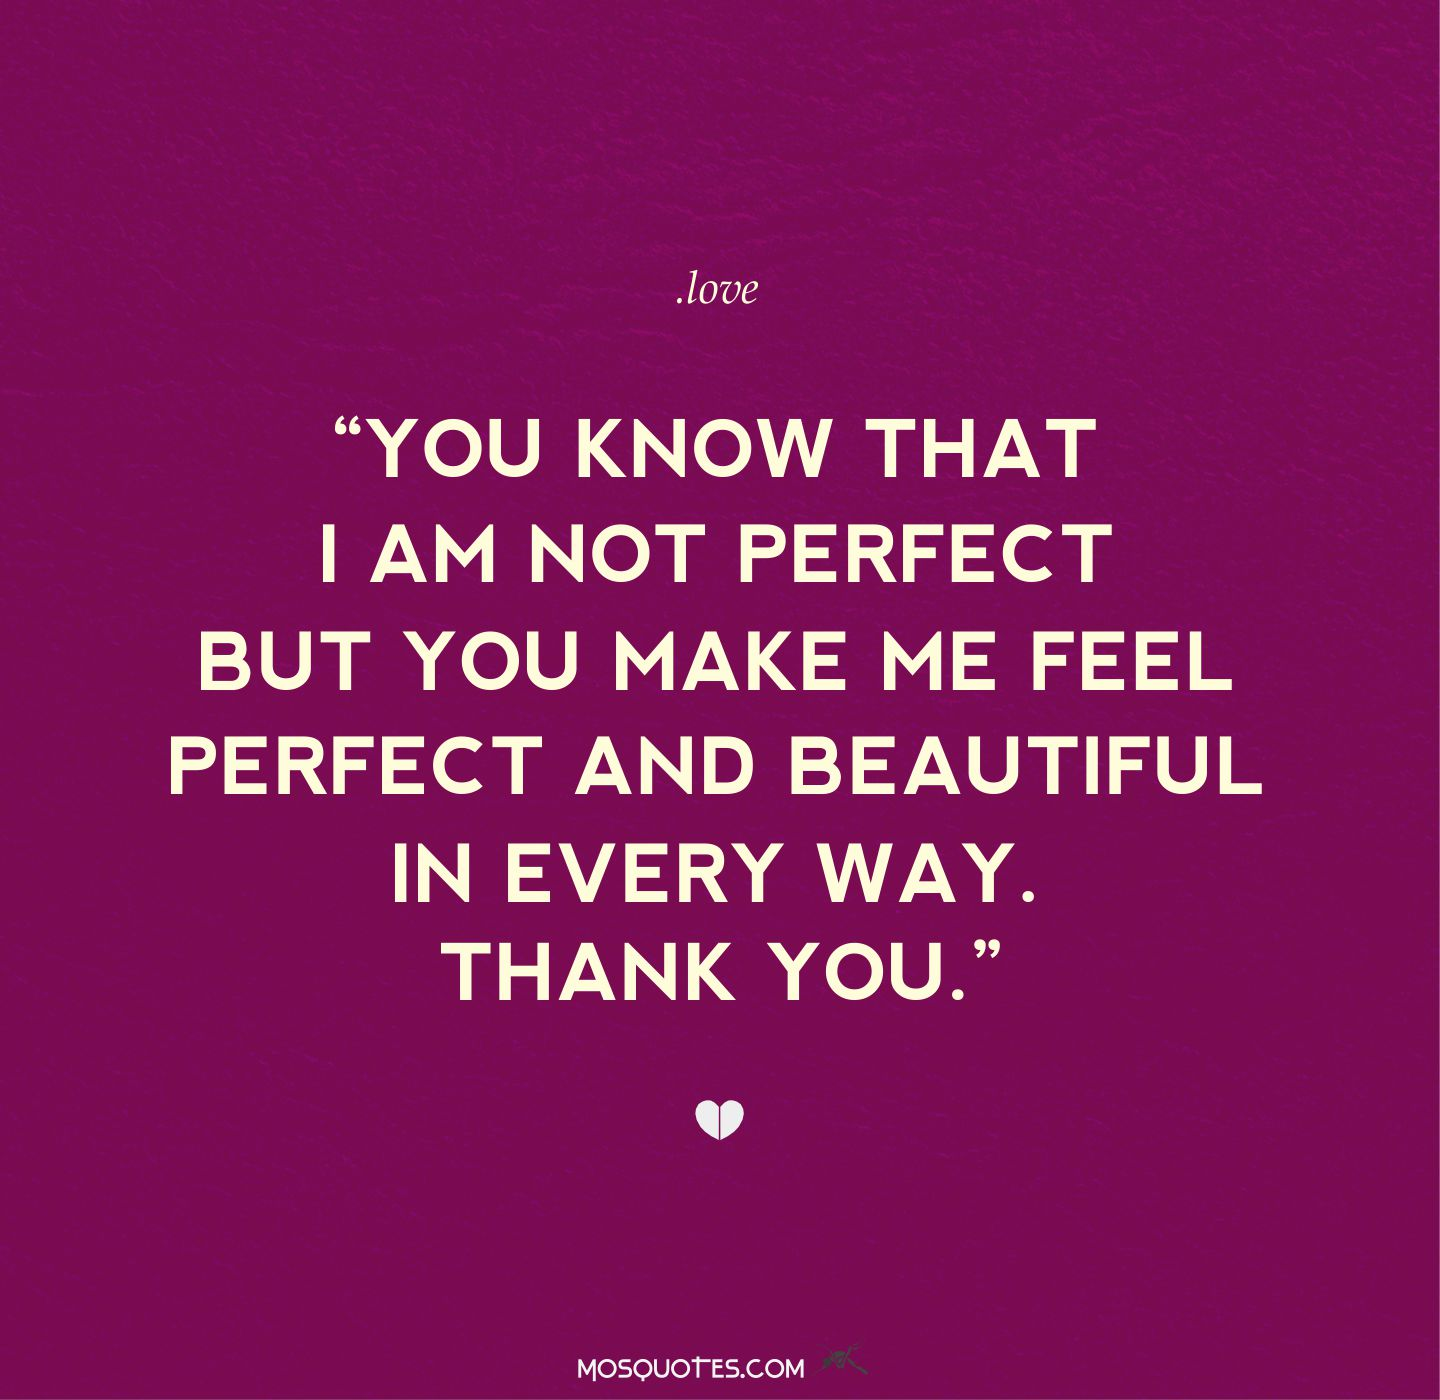 Quotes About Love For Him: Thankful Quotes For Boyfriend. QuotesGram